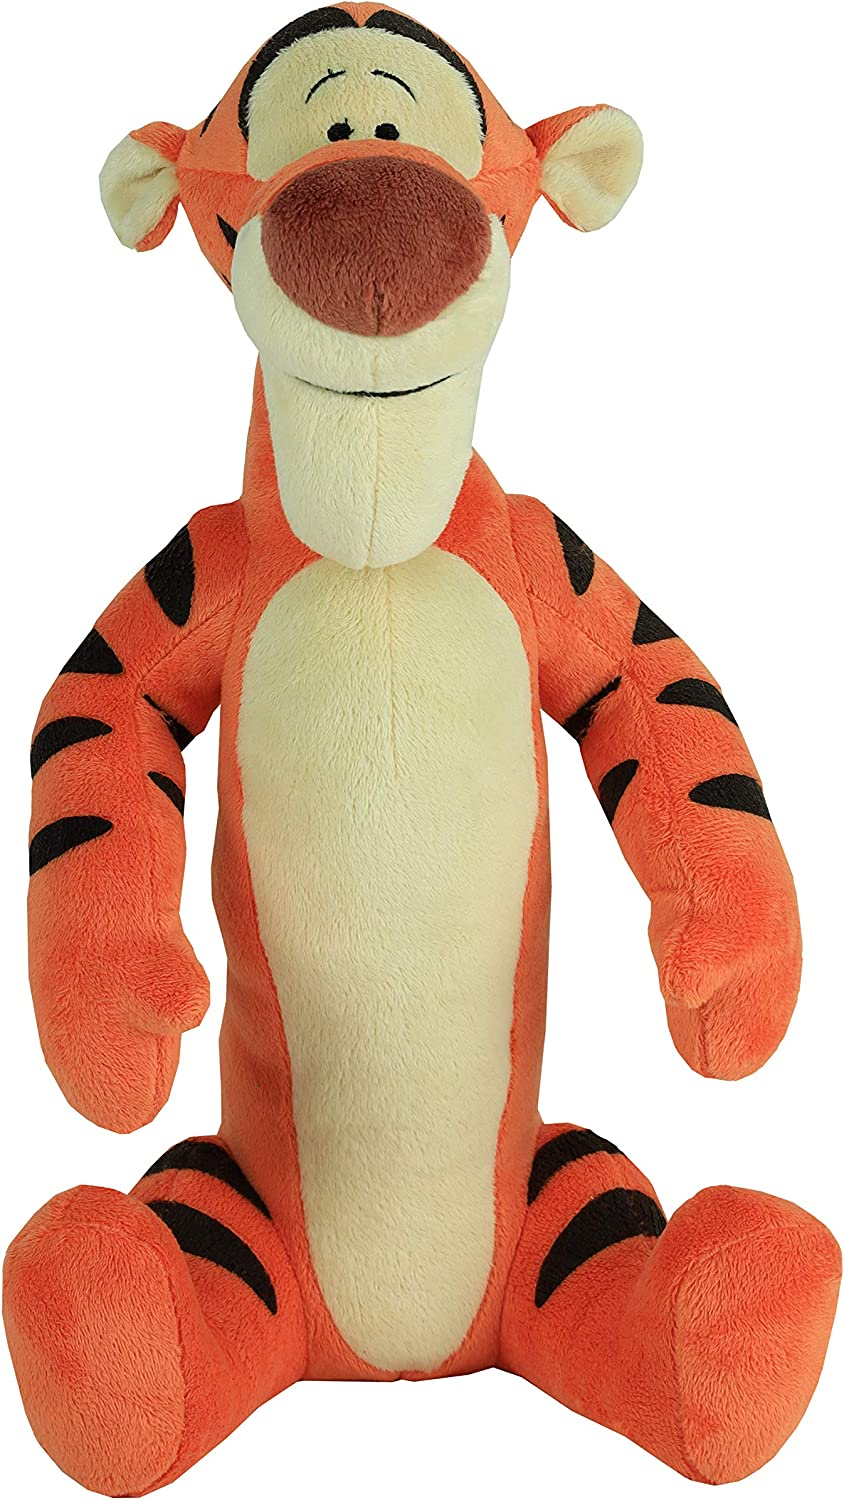 Disney Classics Friends Large 13.5-Inch Plush Tigger from Winnie The Pooh, Stuffed Animal, Tiger, by Just Play